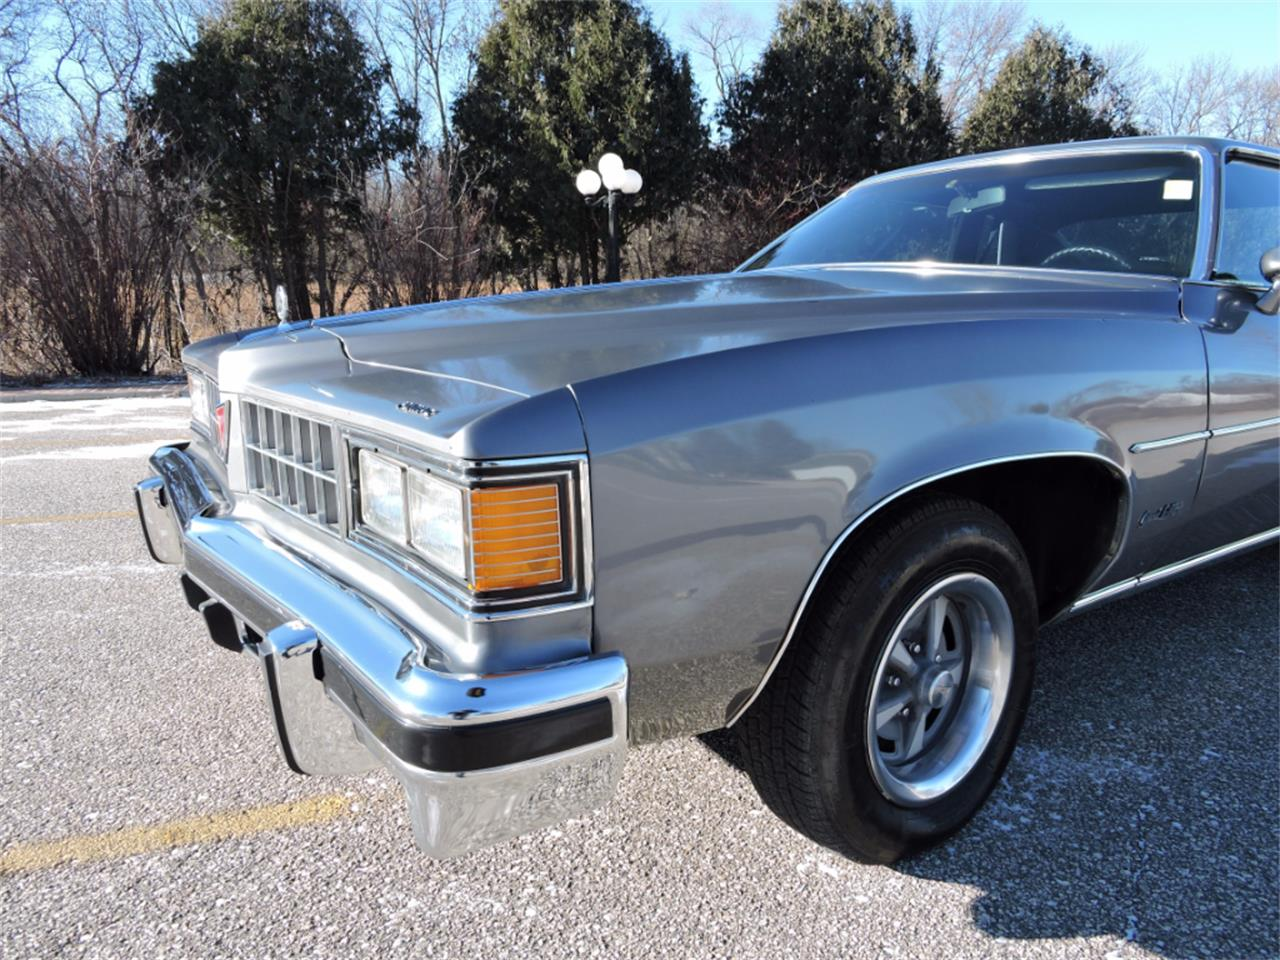 1977 Pontiac Grand LeMans for sale in Greene, IA – photo 39